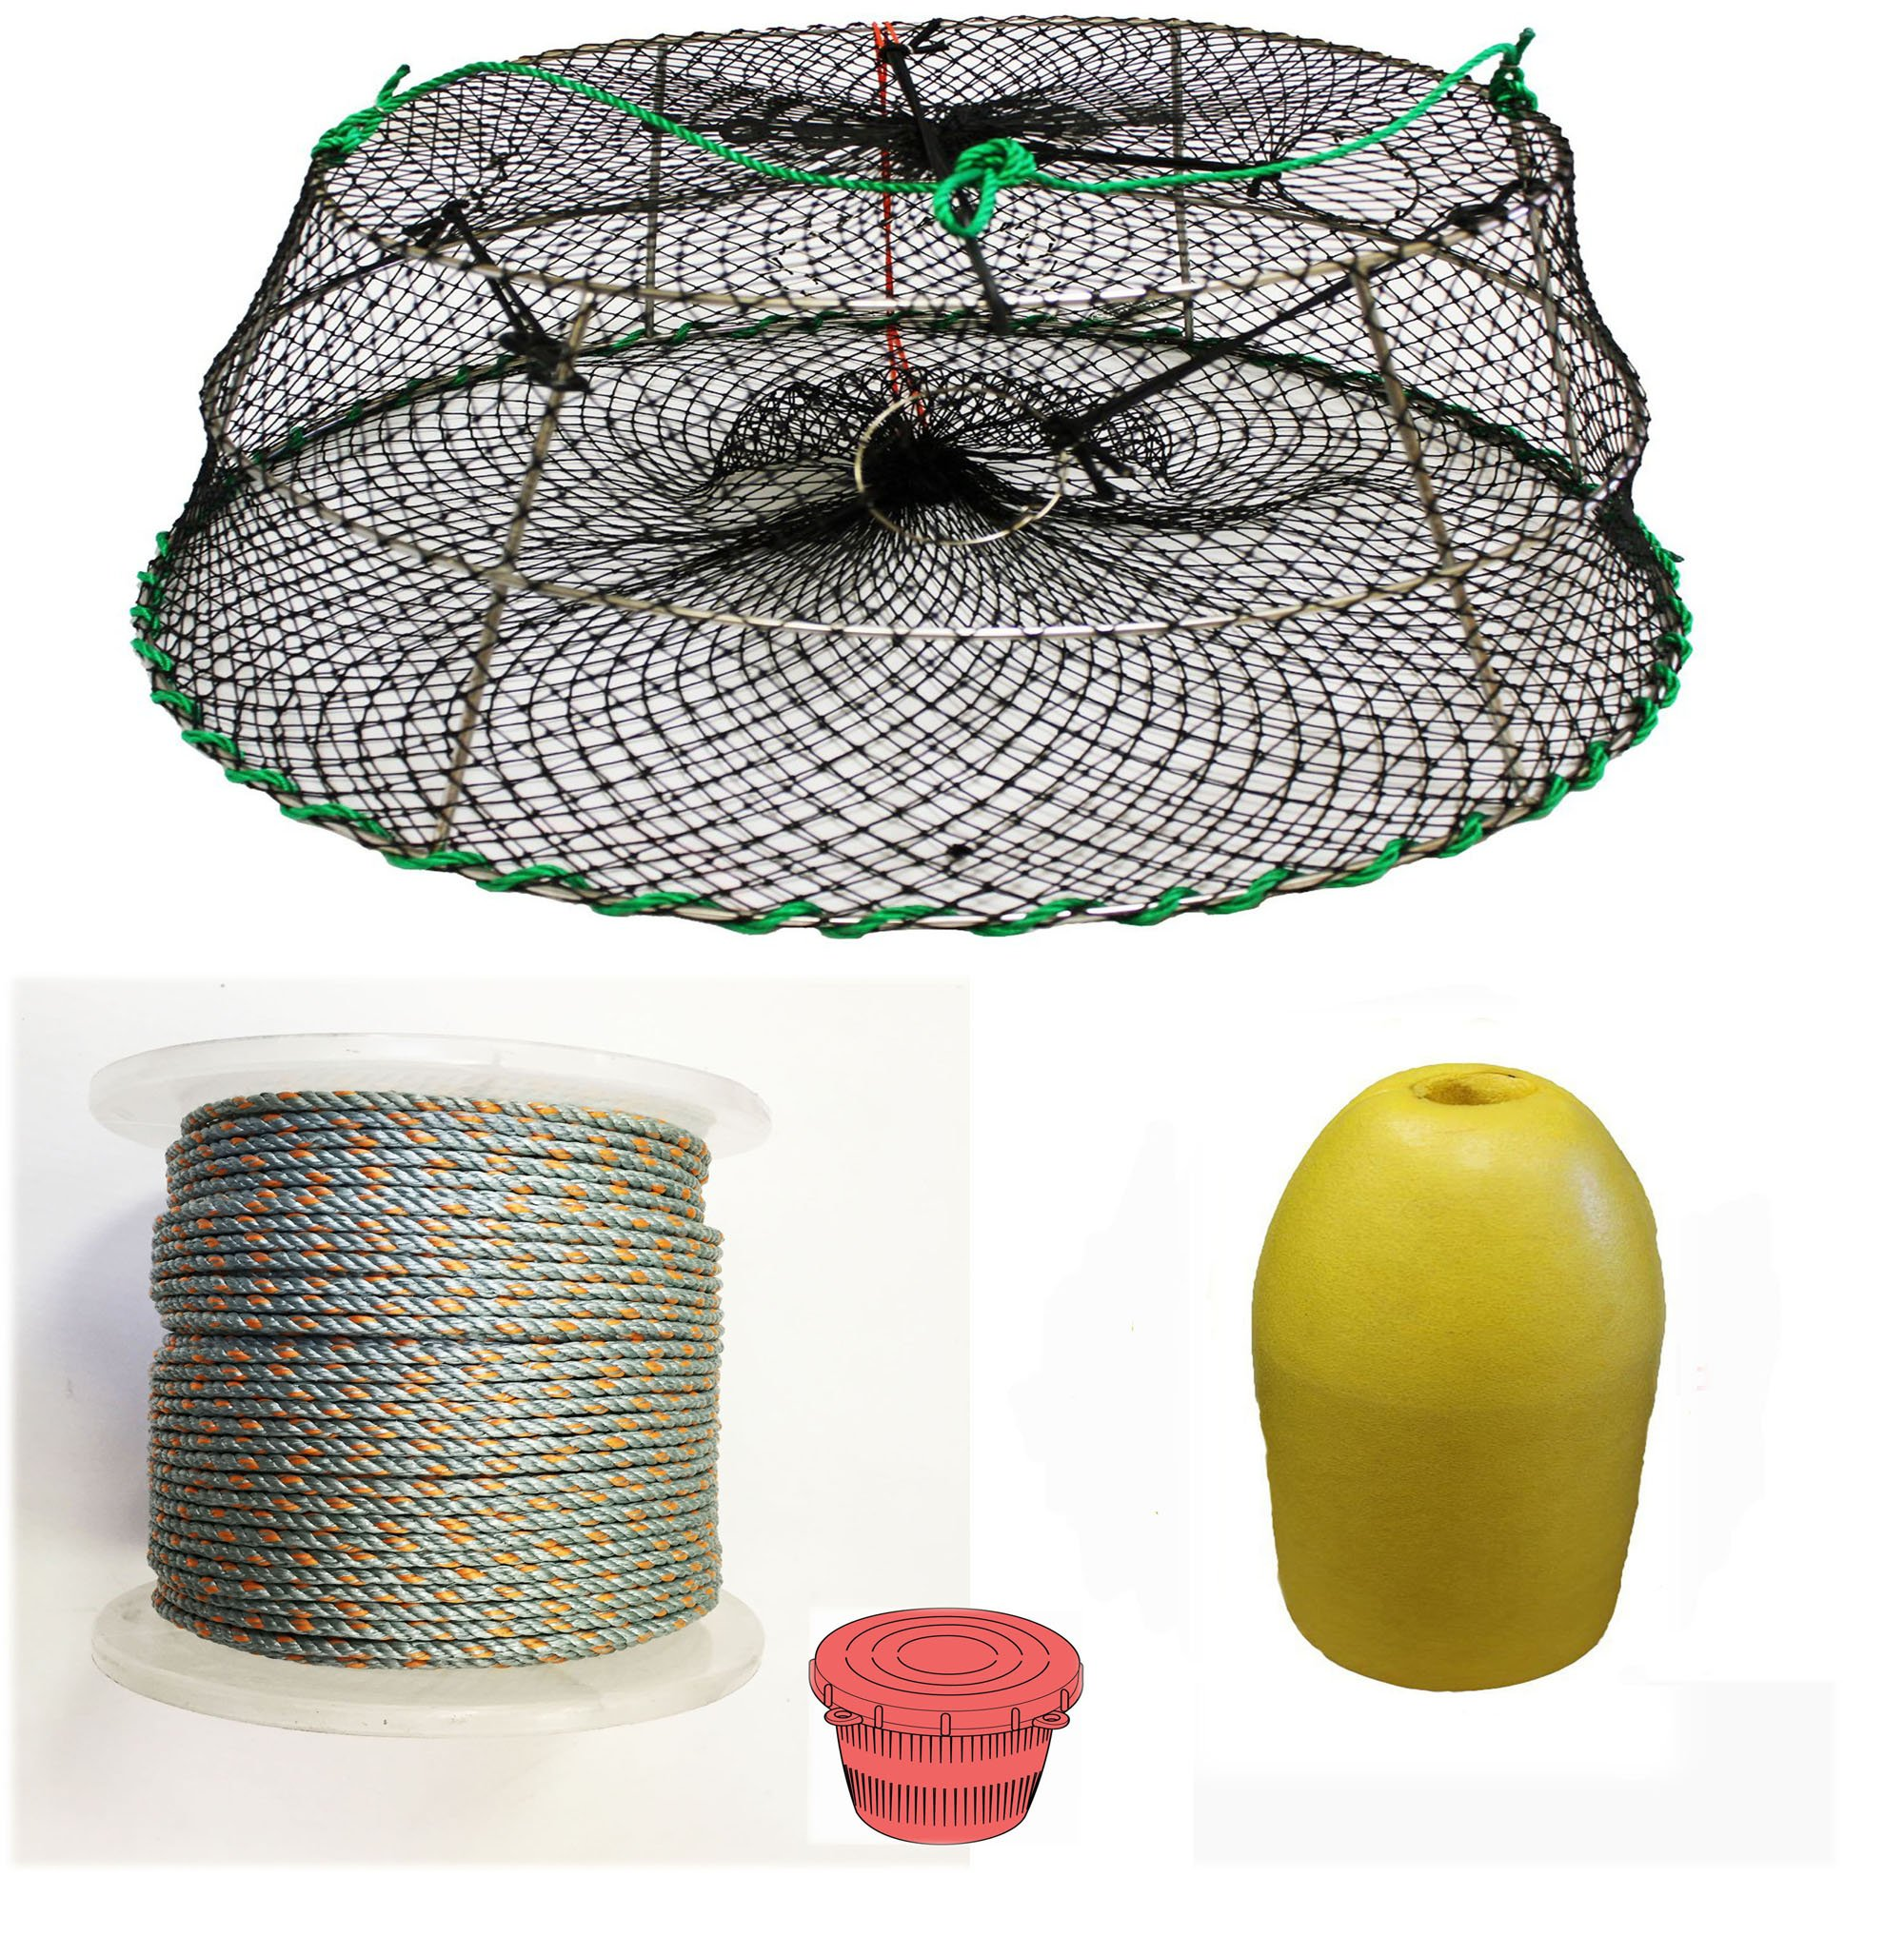 KUFA Sports Tower Style Prawn trap with 400' rope, Yellow float and Vented Bait Jar combo (CT77+PAL1) by KUFA Sports